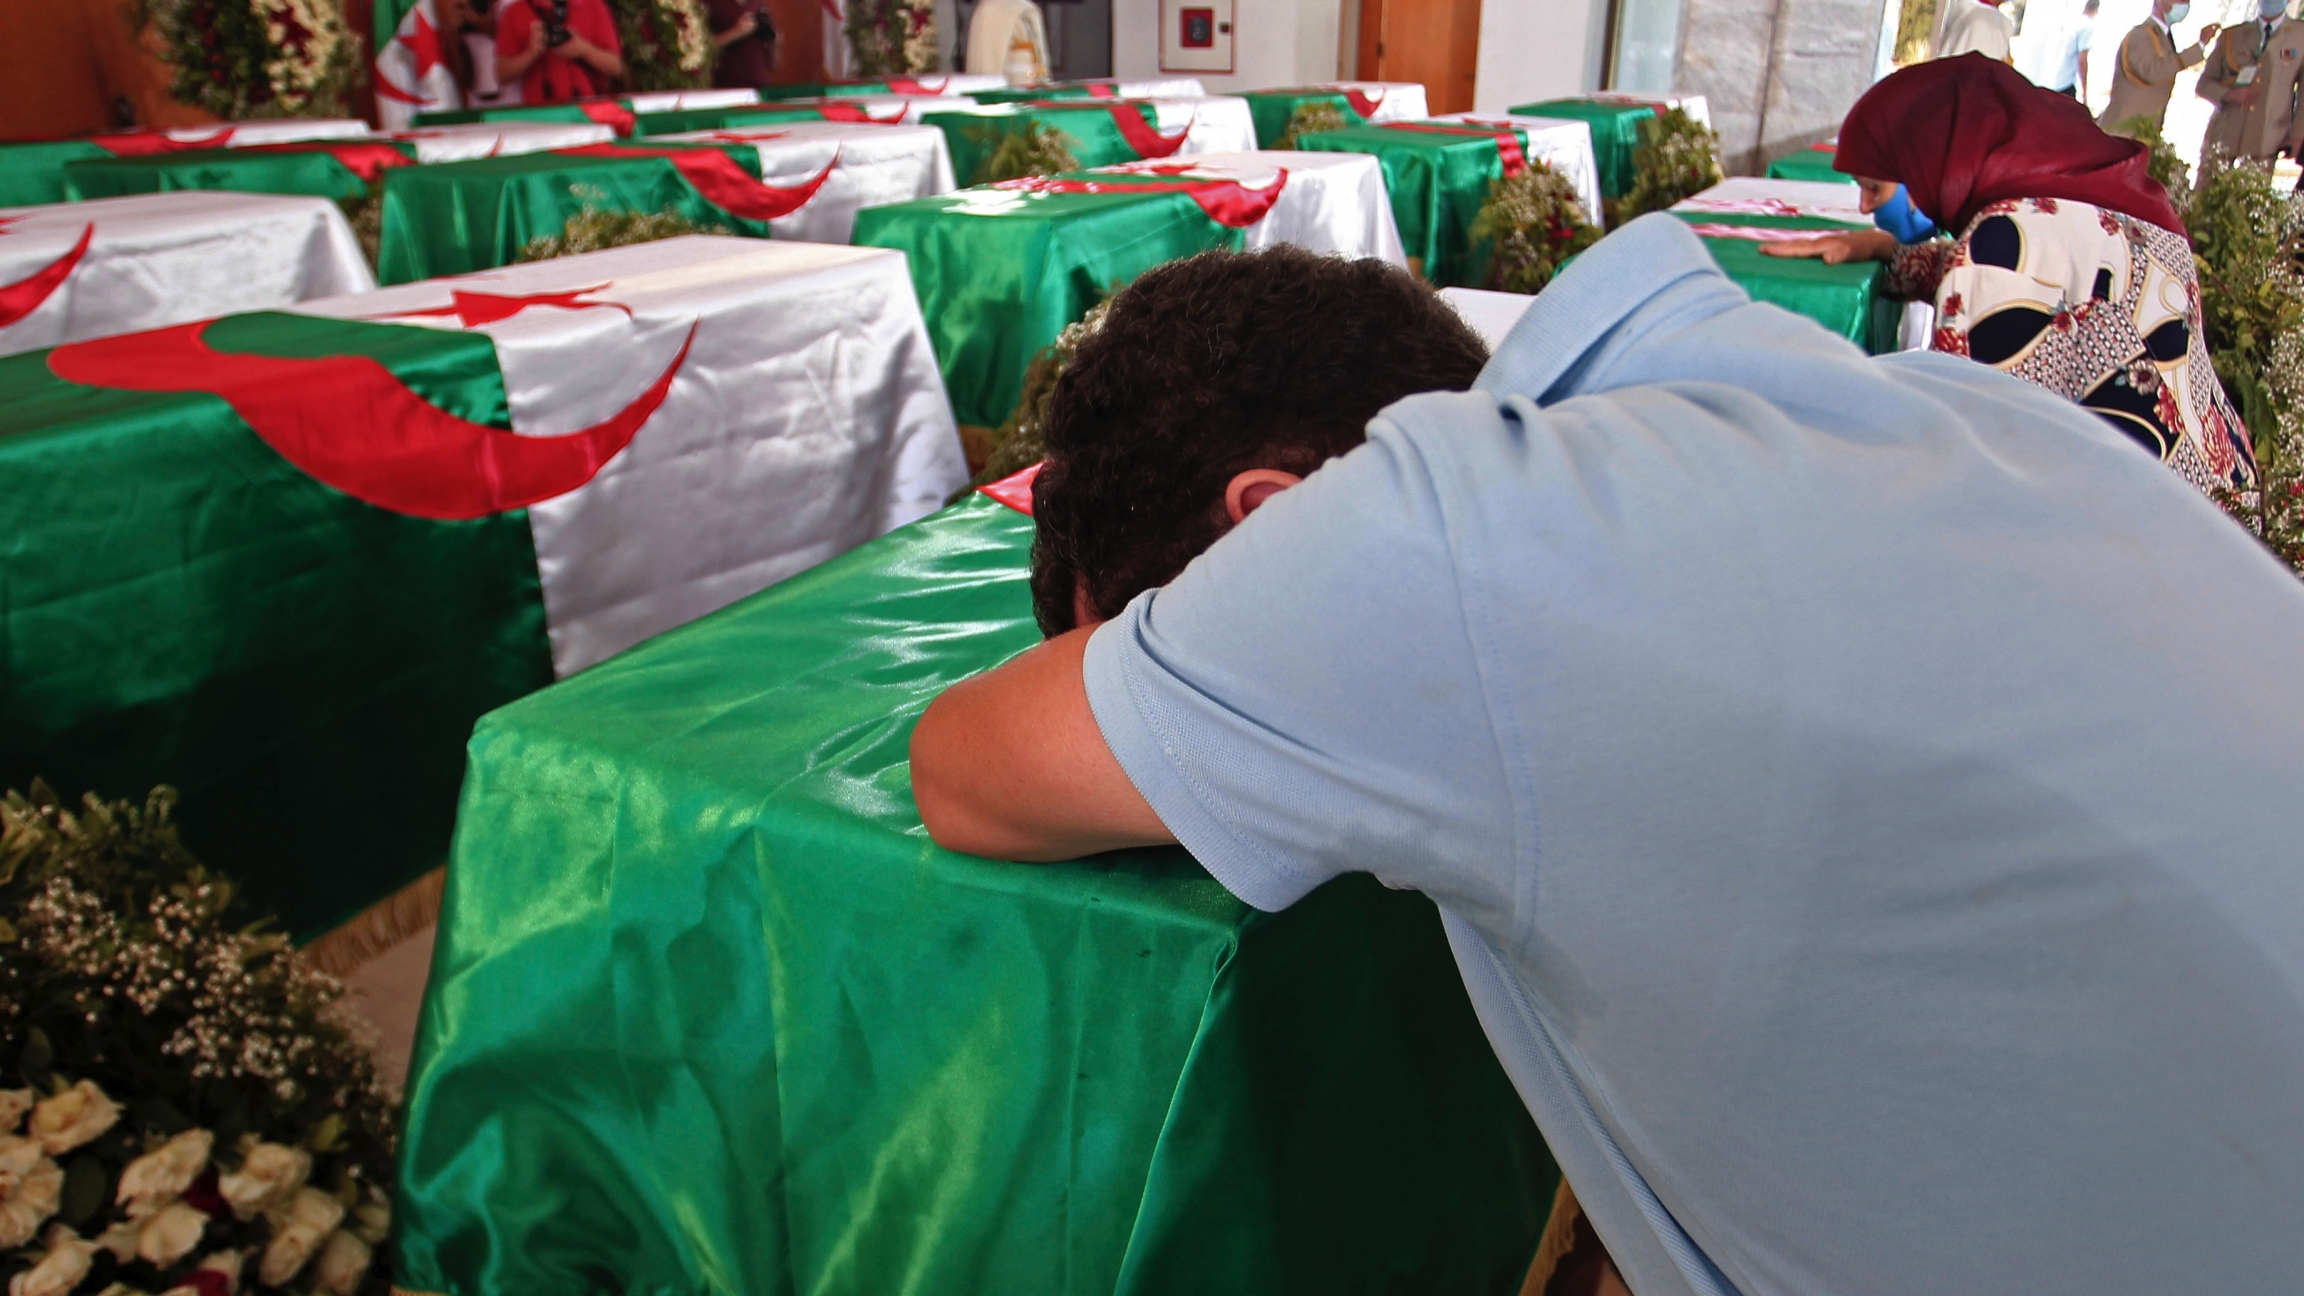 A man wearing a blue shirt leans his body over a coffin draped with the Algerian flag in a room full of coffins.